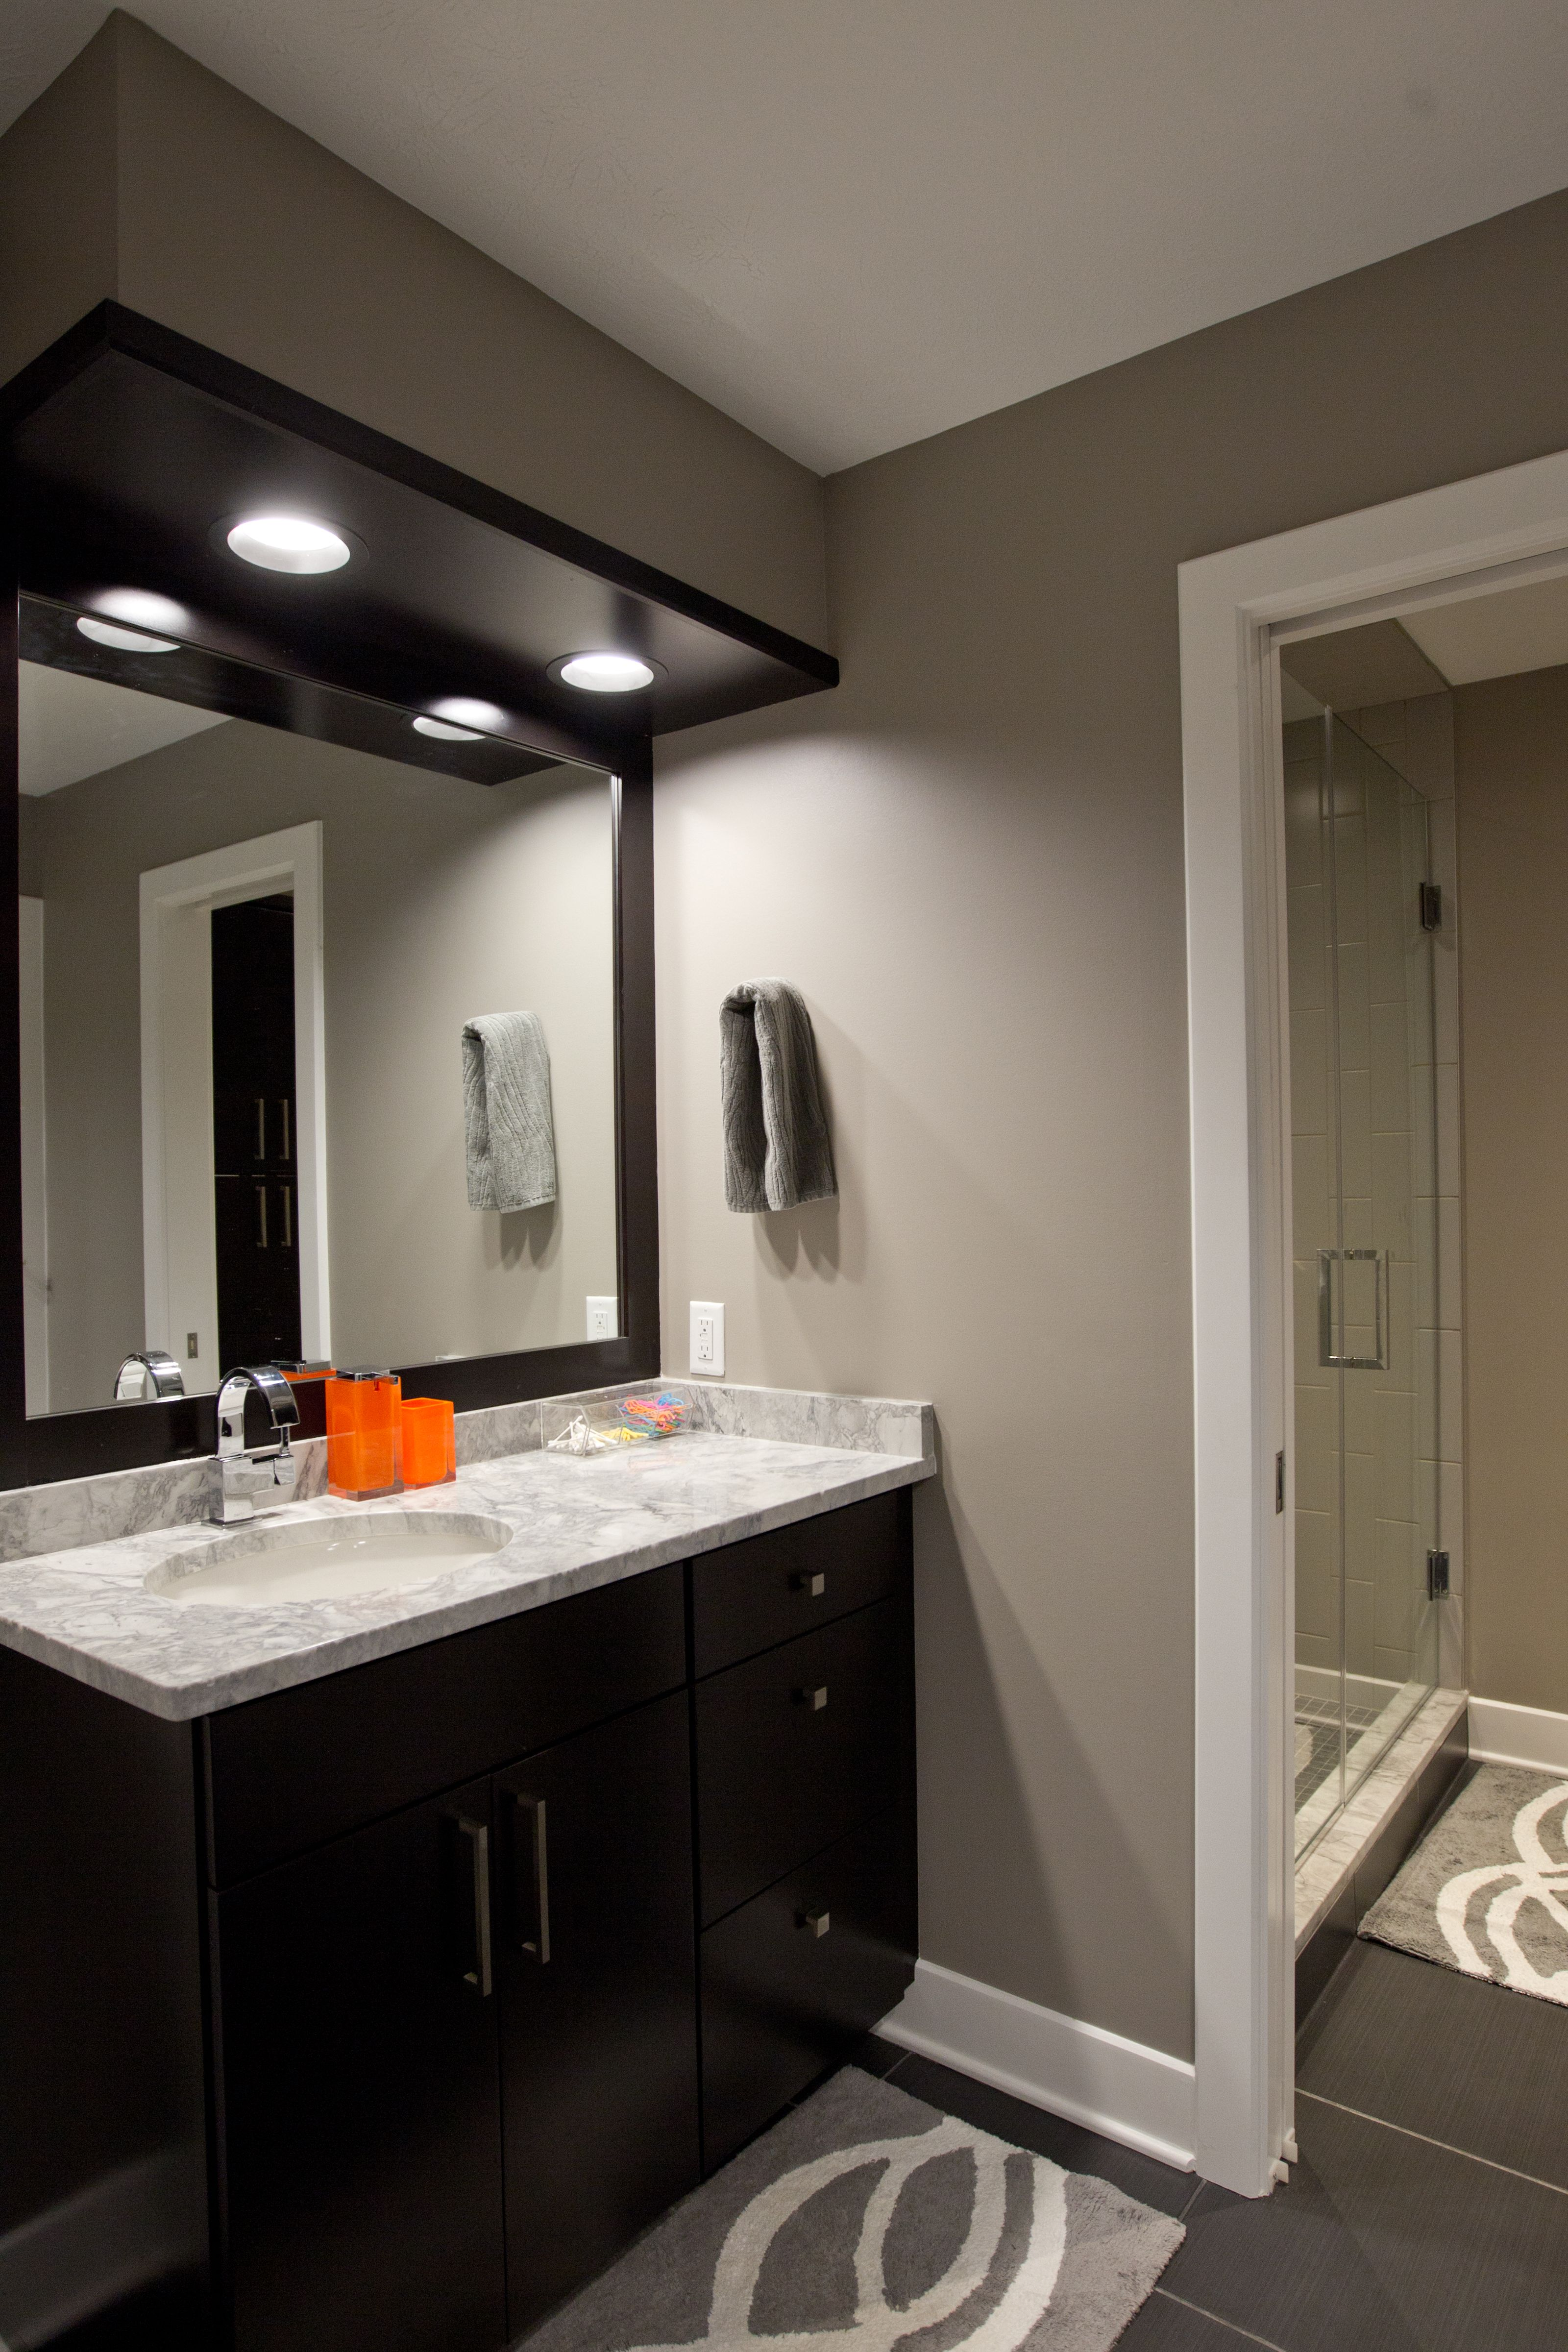 Bathroom Kitchens by Design, Indianapolis. www.mykbdhome